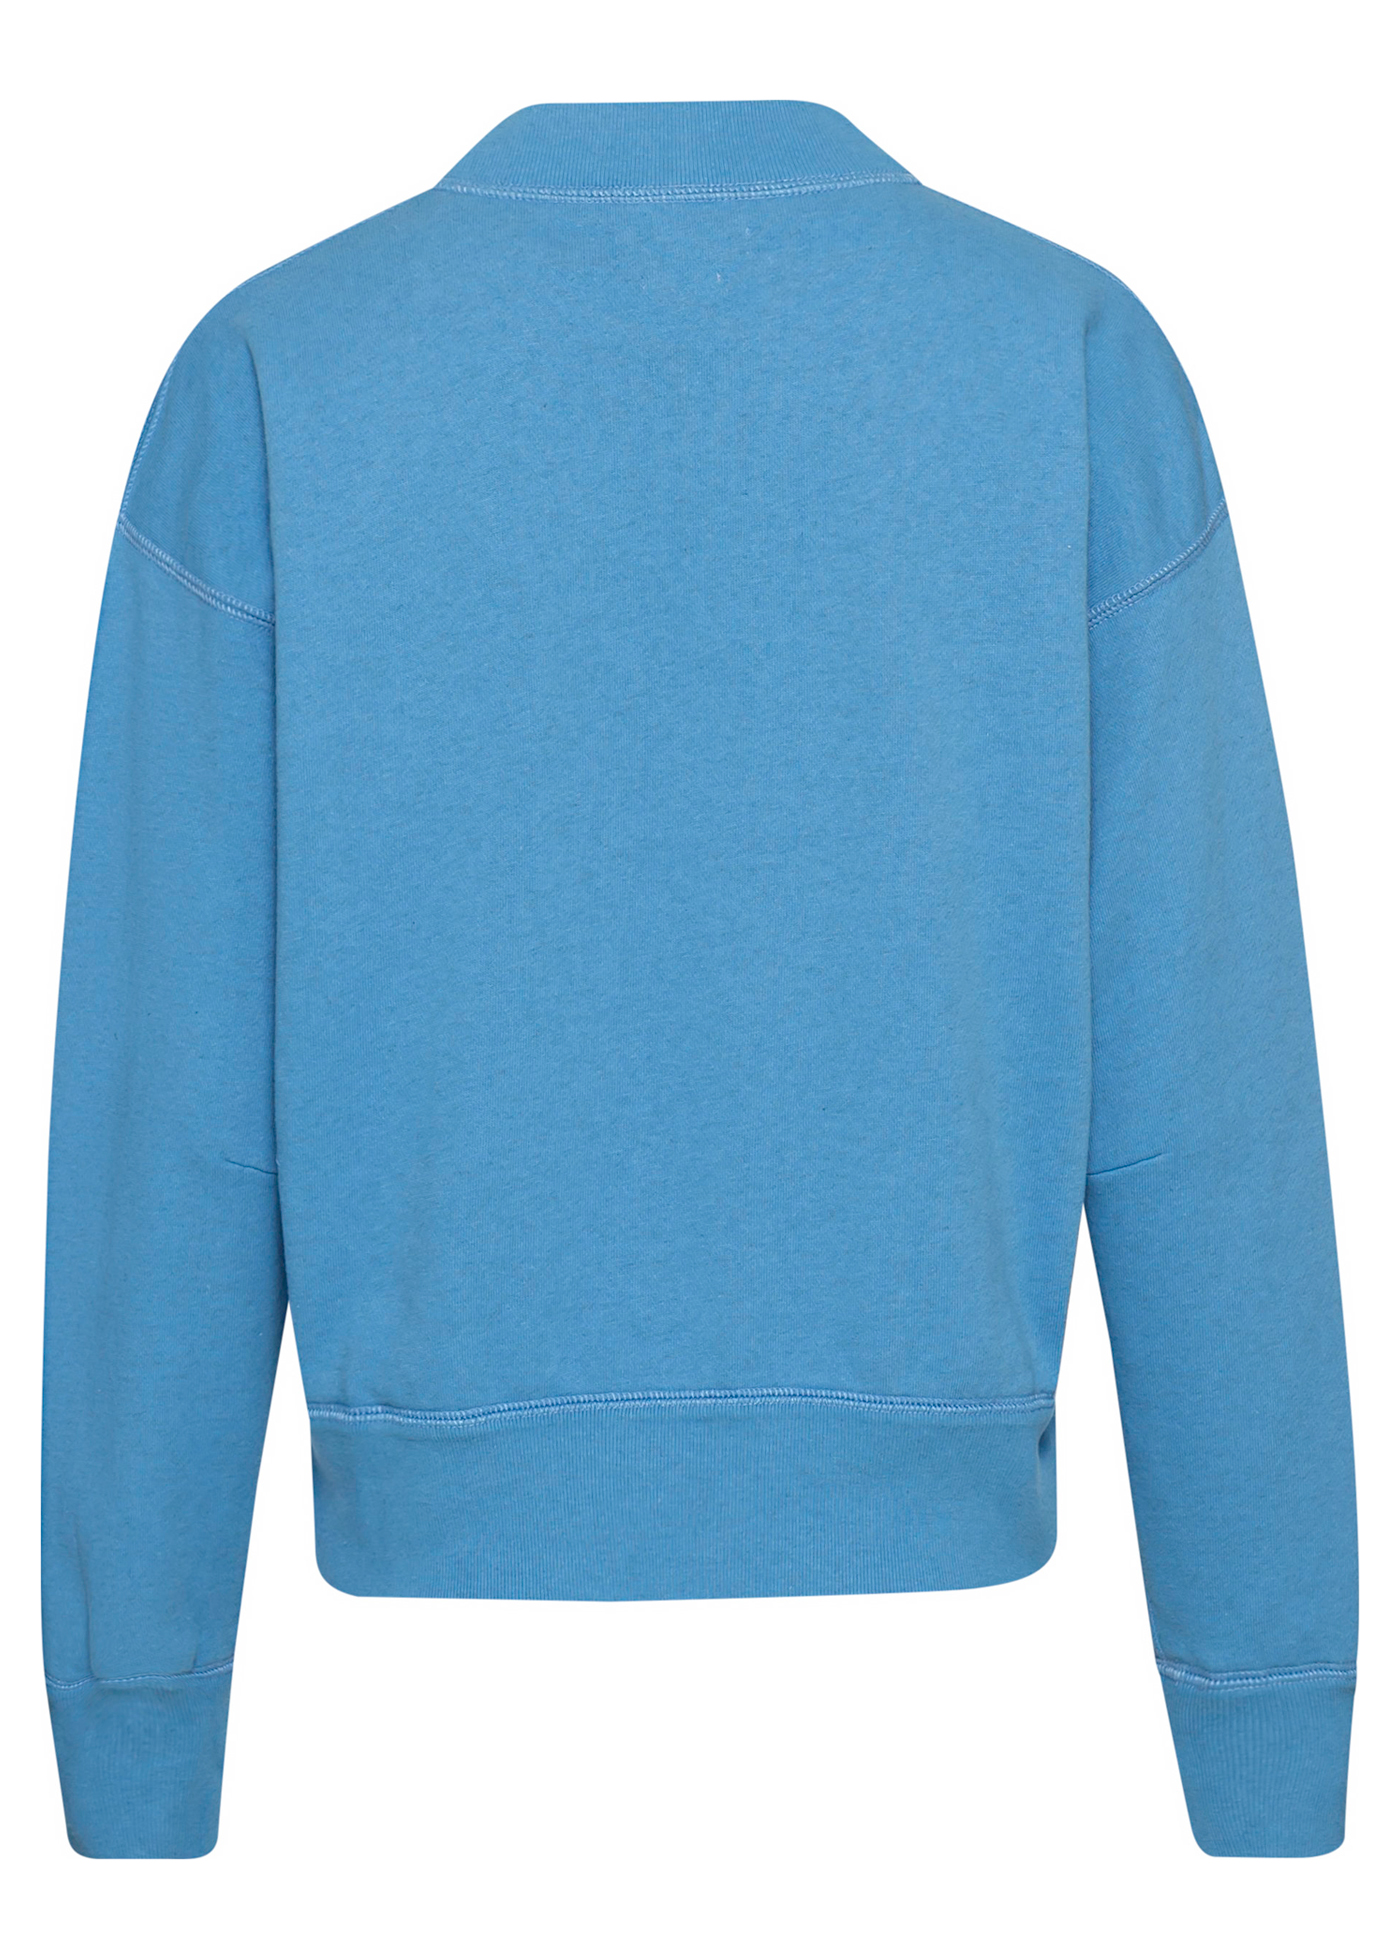 Sweat shirt MOBY image number 1